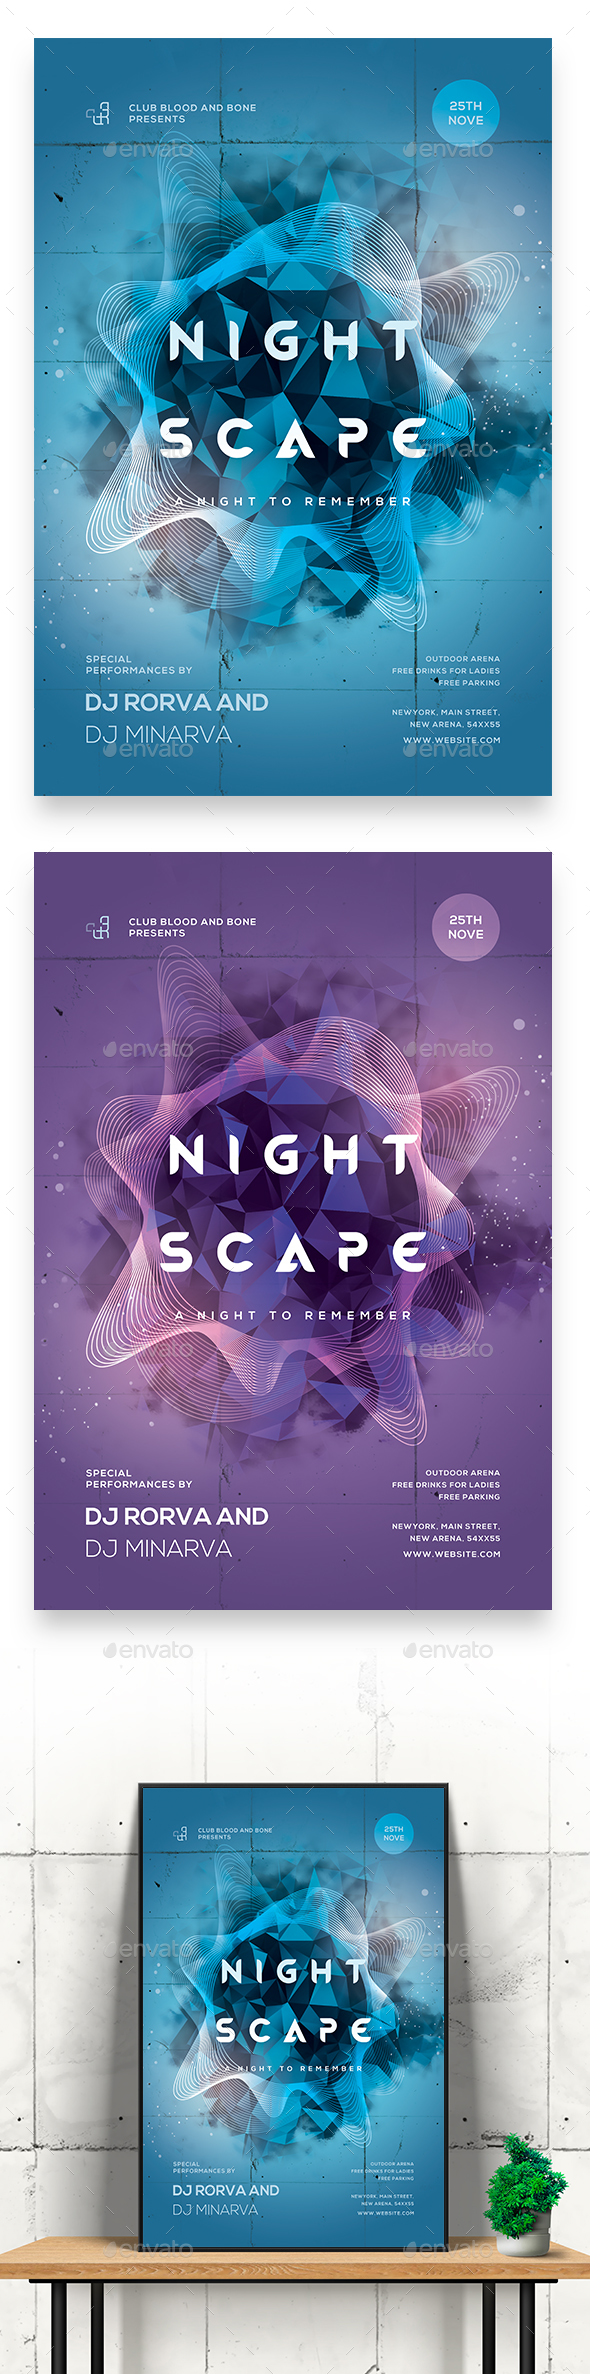 Night Escape Party Flyer/Poster - Clubs & Parties Events